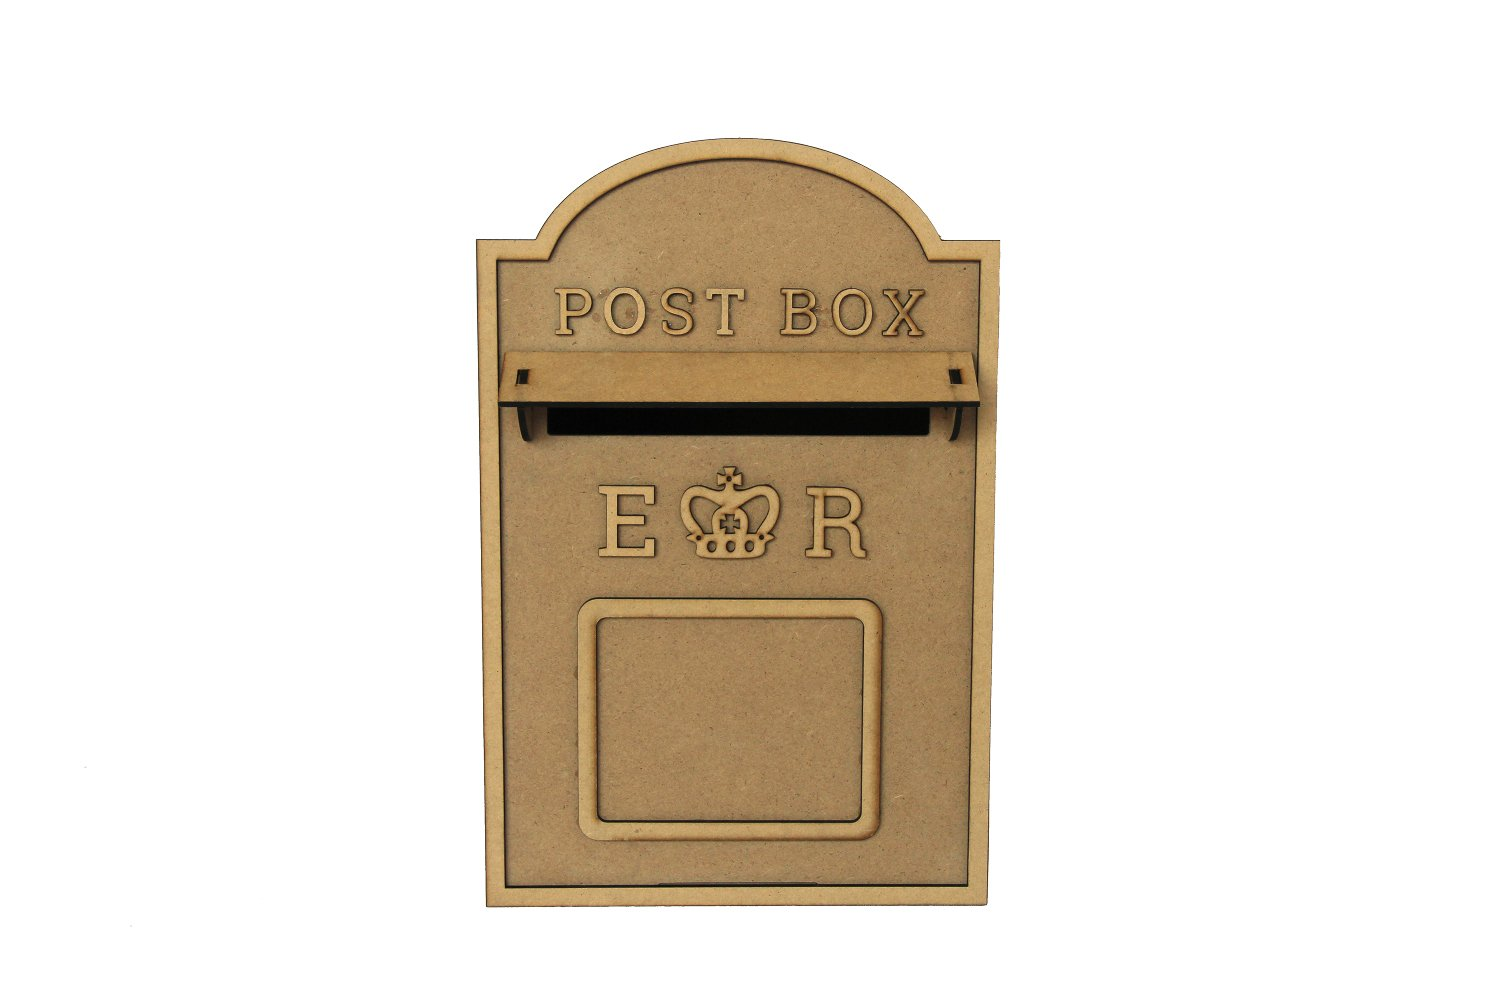 ASVP Shop Wedding Post Box, Royal Mail Styled, Flat Pack, Unpainted MDF for Cards